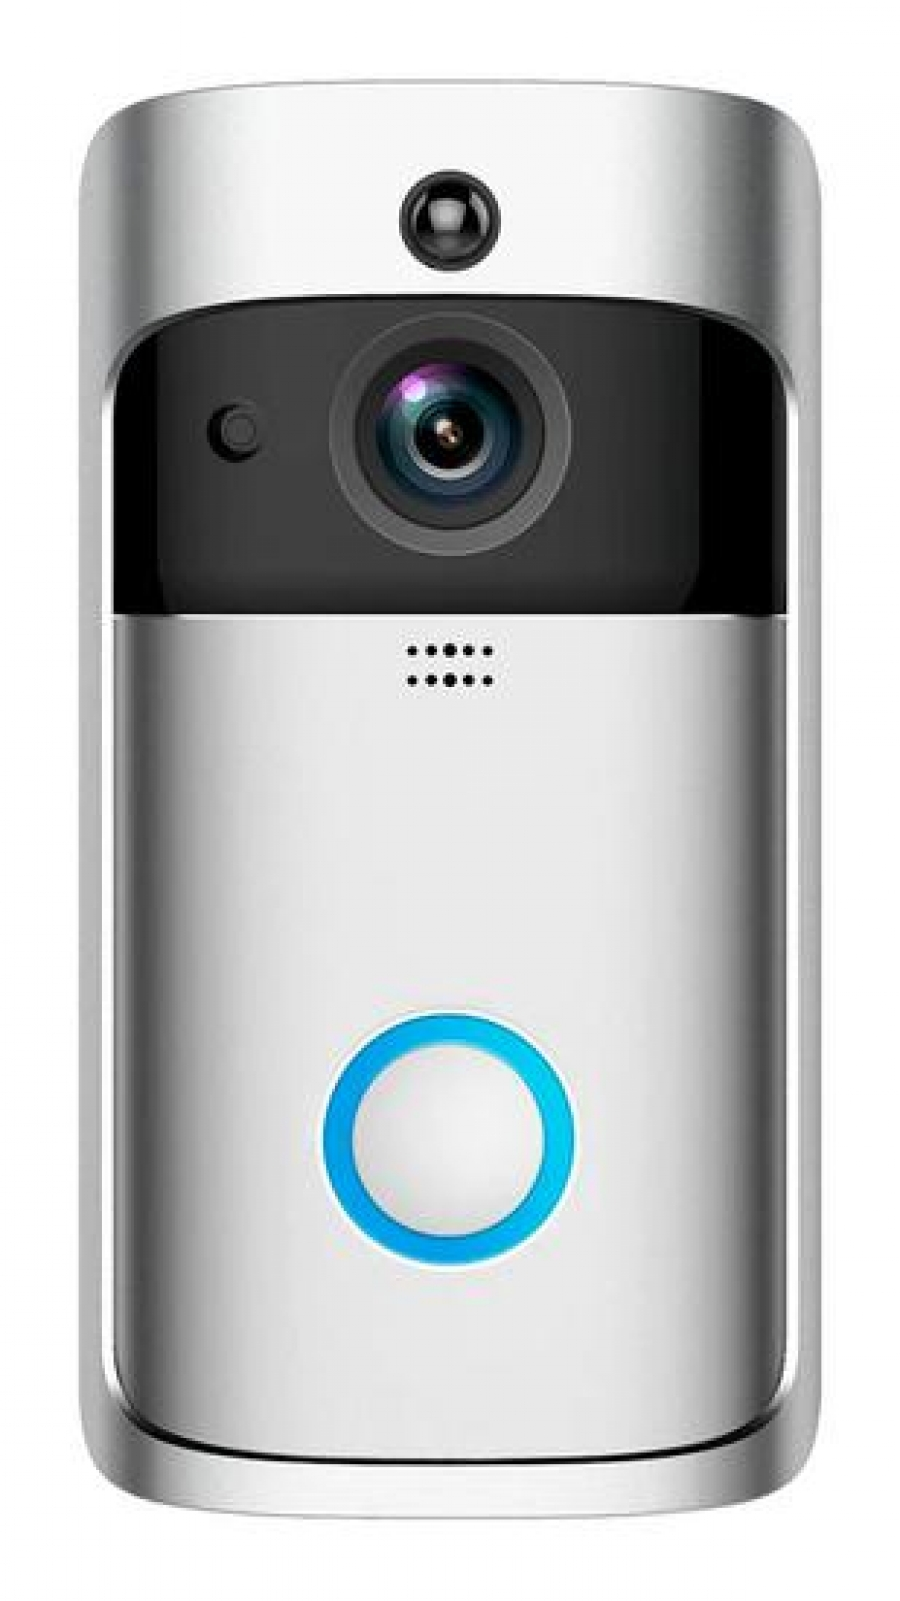 CAMERA VIDEO PORTEIRO DC-01 DOORBELL V5